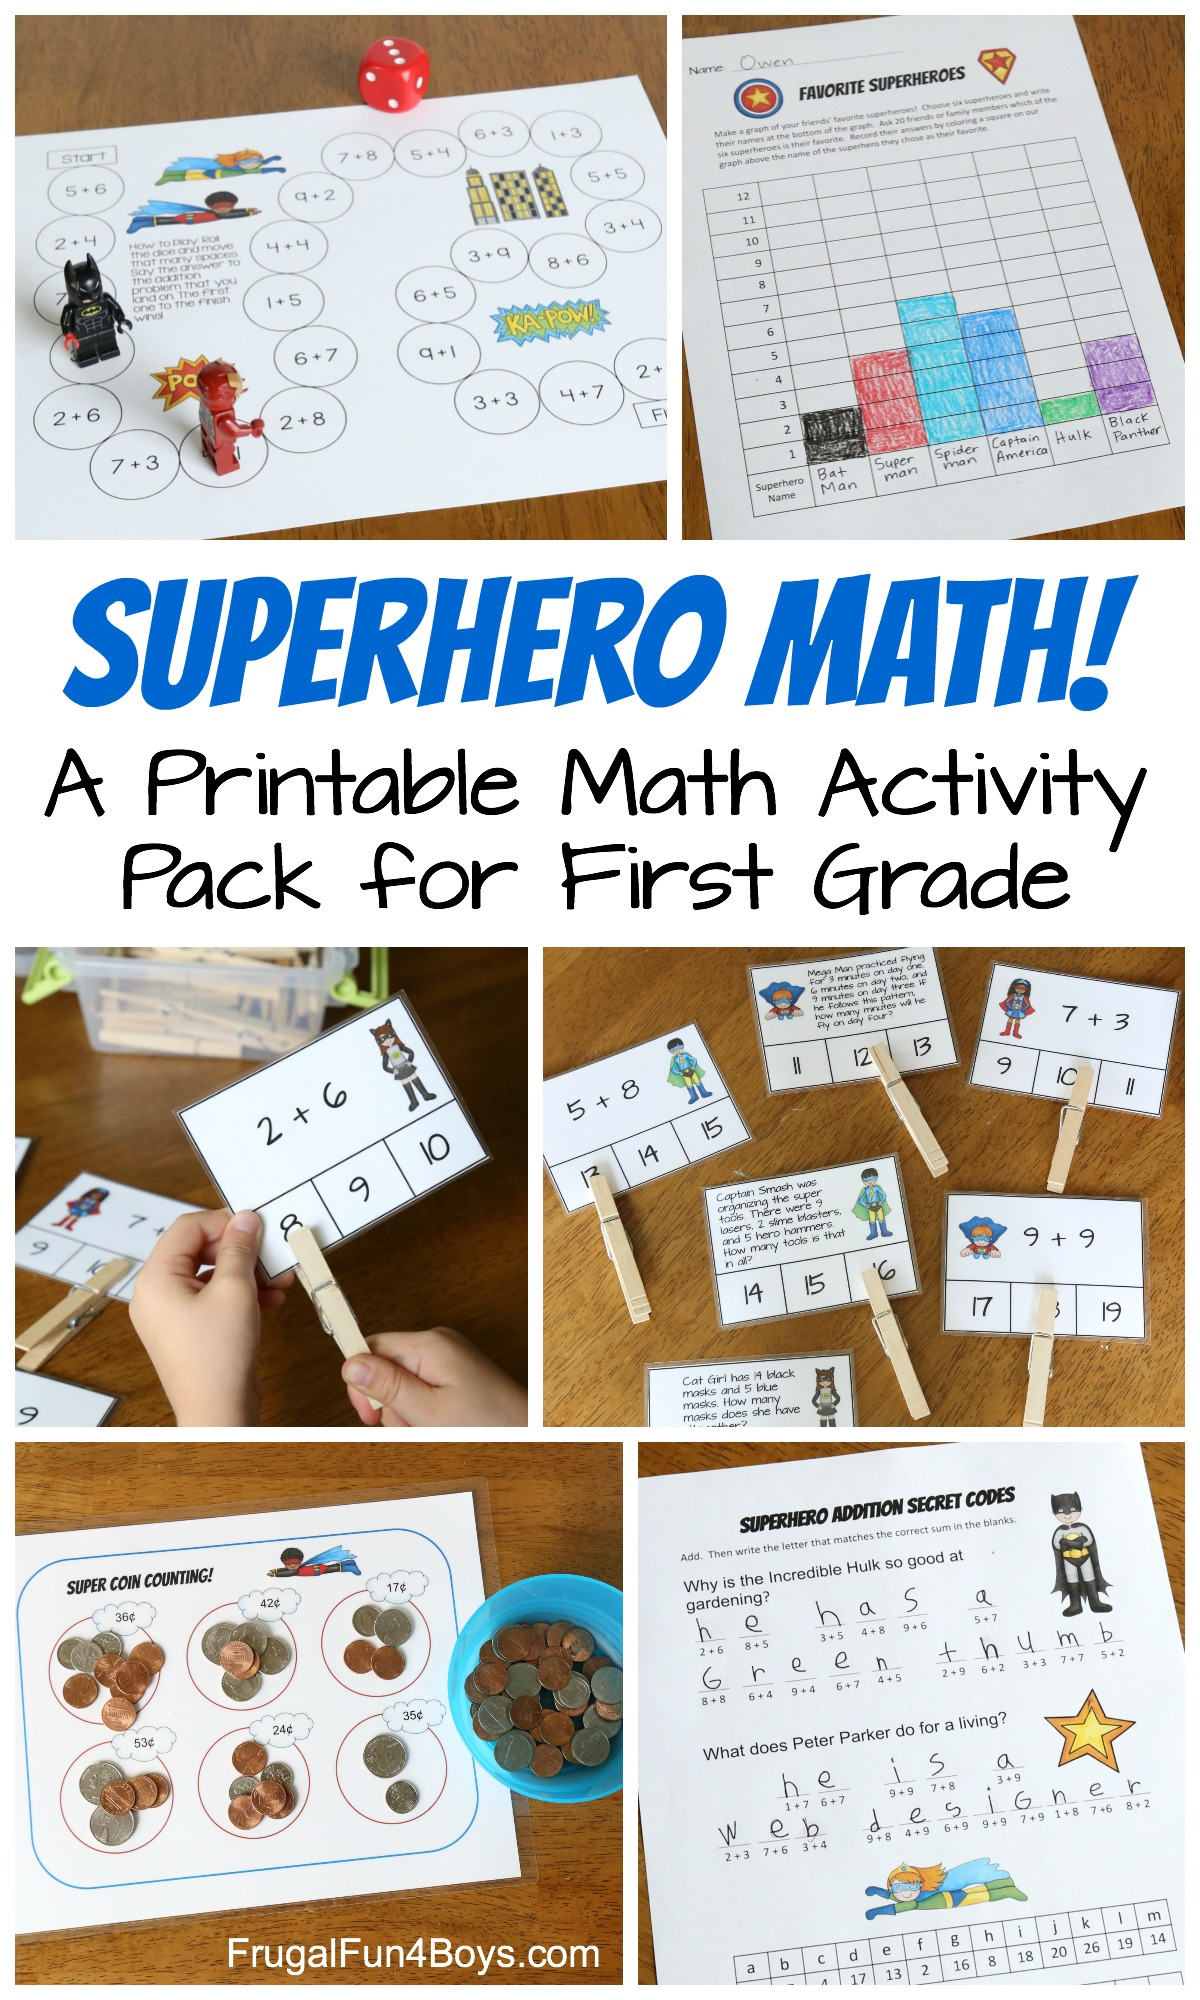 Superhero Math A Printable Math Activity Pack For First